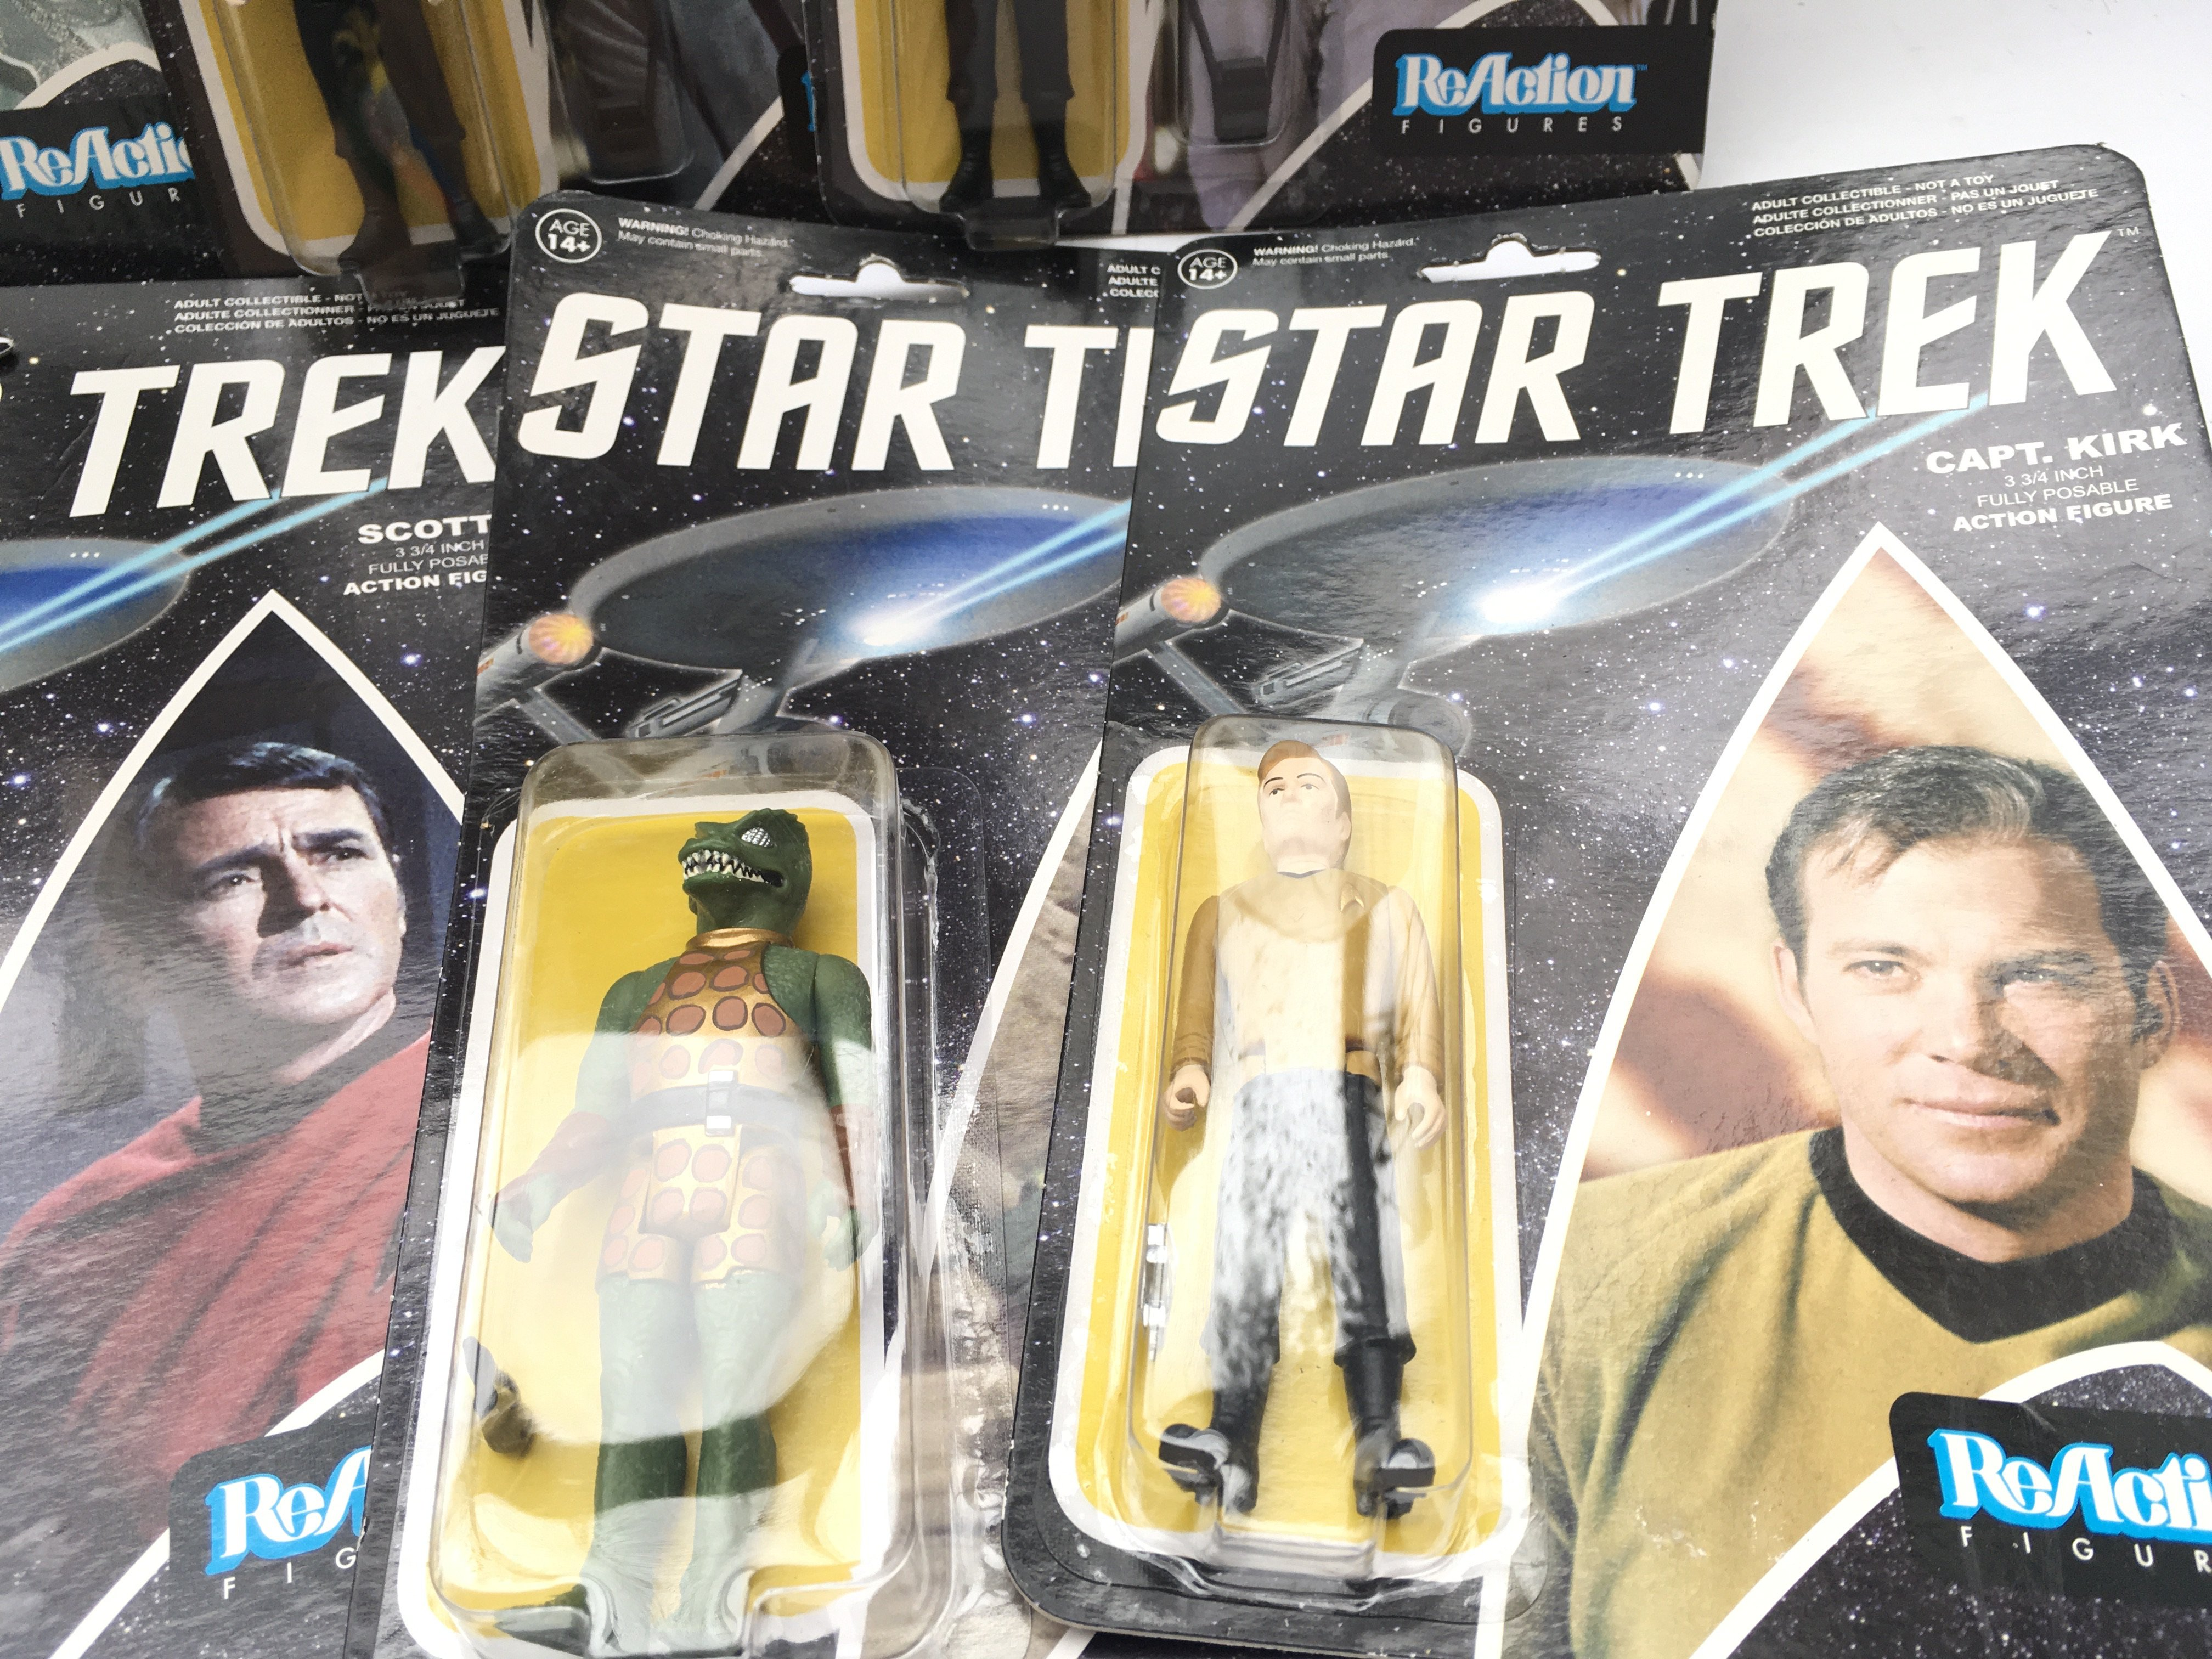 A Collection of ReAction Star Trek Figures. Includ - Image 5 of 5